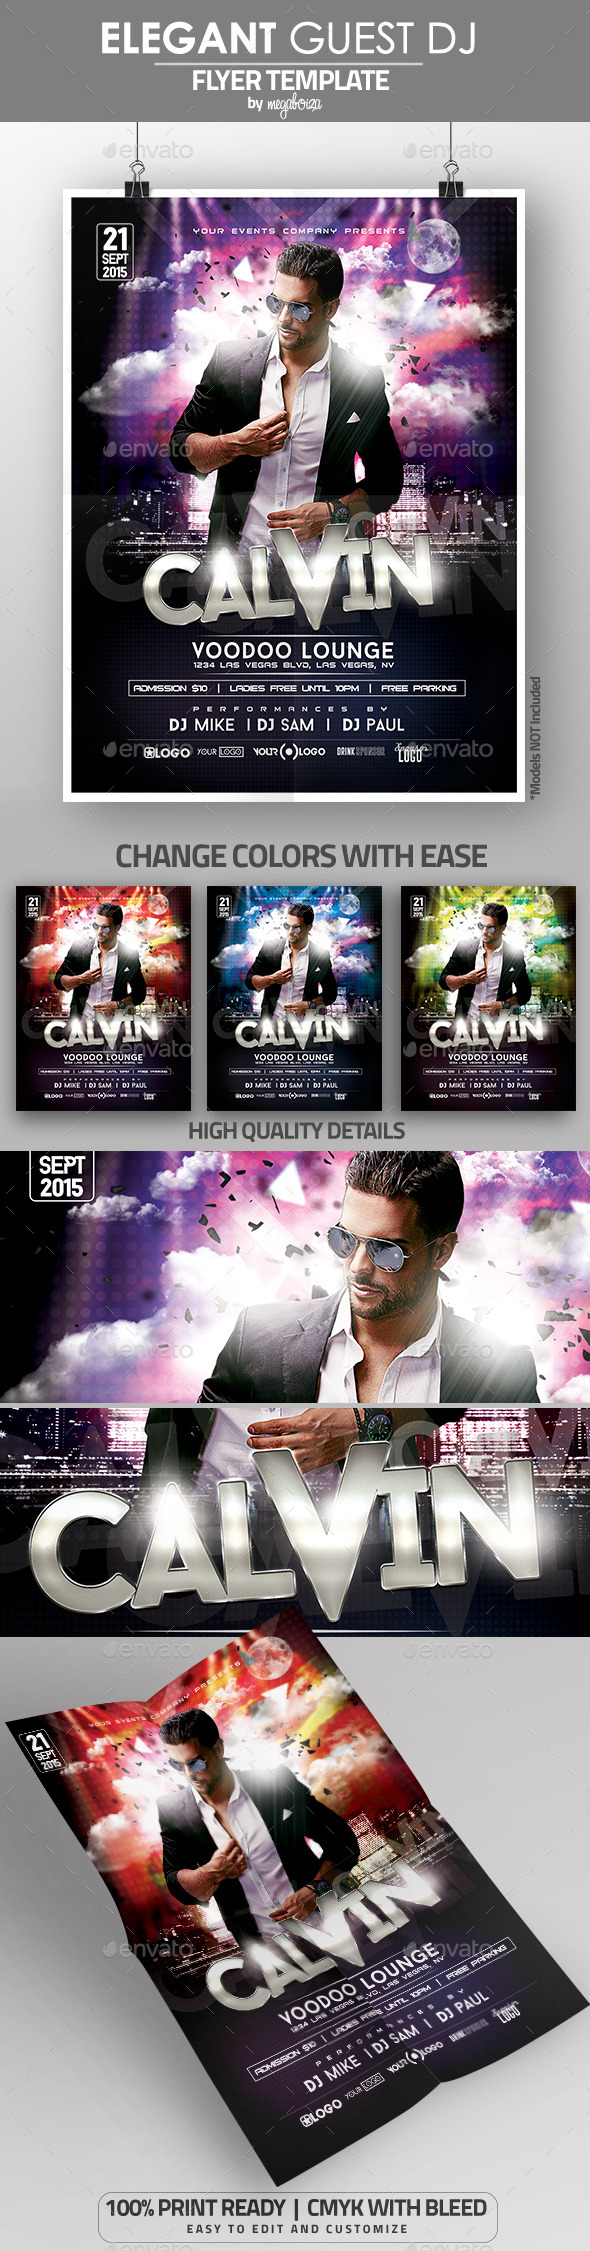 Elegant Guest DJ Flyer / Poster Template - Clubs & Parties Events